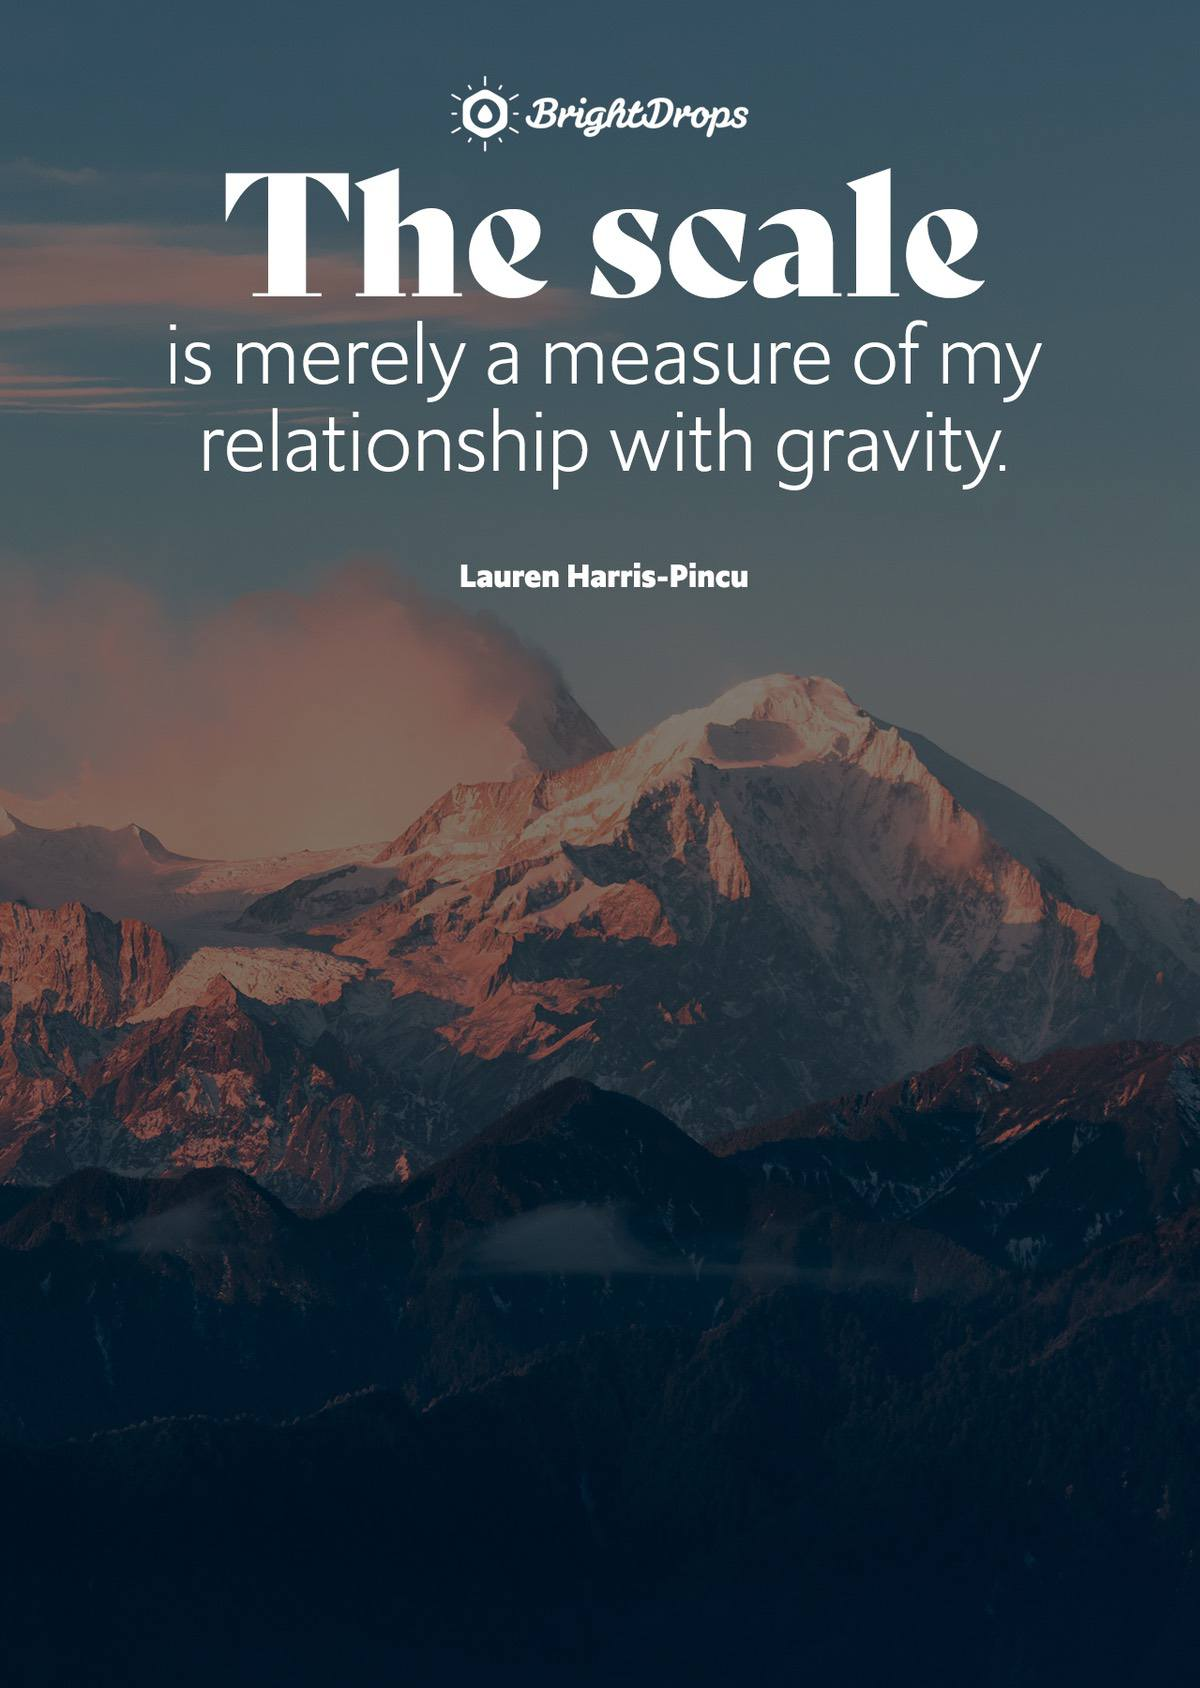 The scale is merely a measure of my relationship with gravity. - Lauren Harris-Pincu